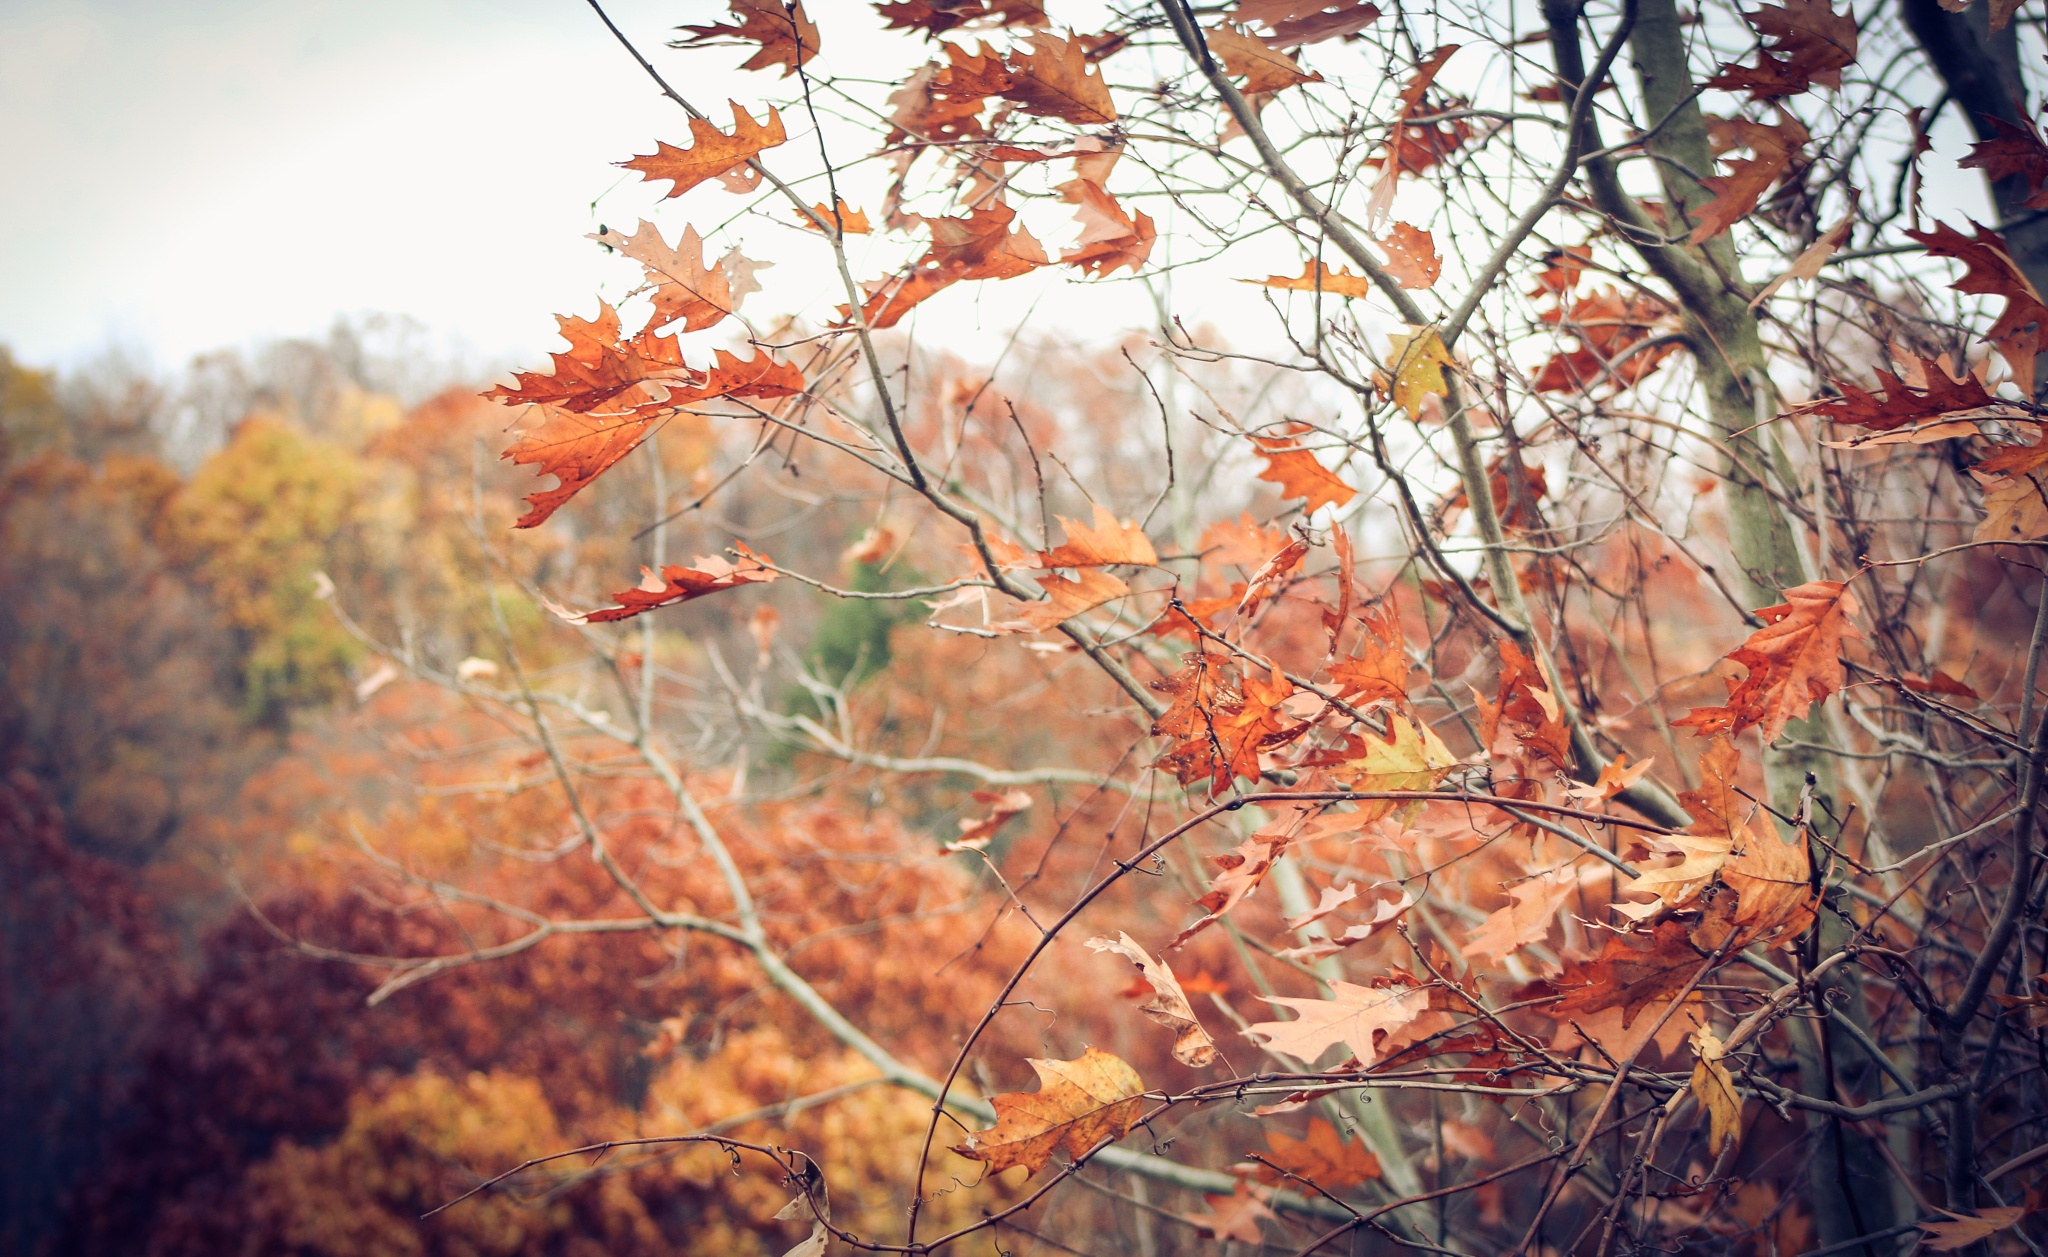 The Colors of Fall 13 by Adib Mady